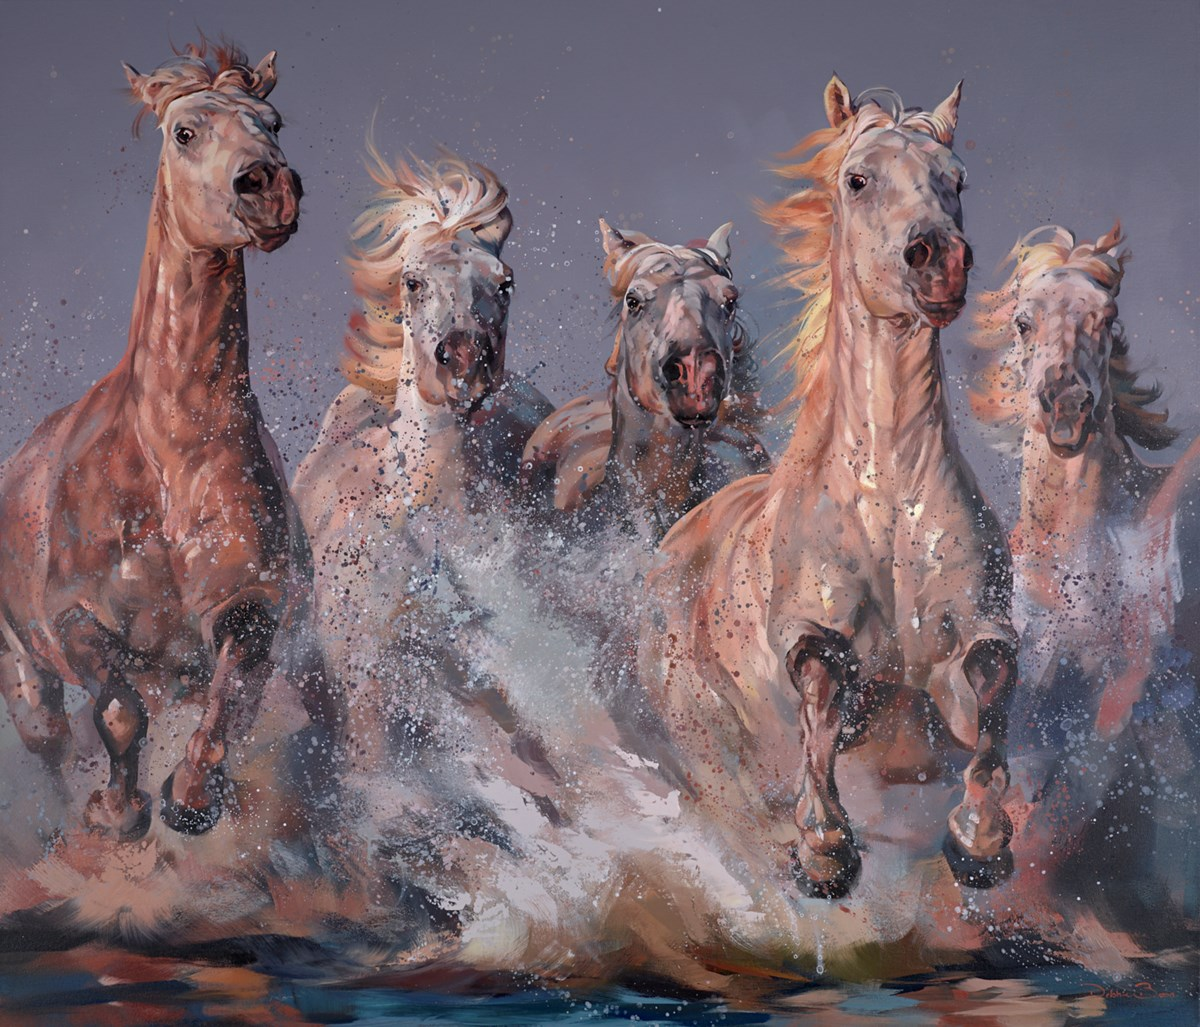 Wild Camargue by debbie boon -  sized 55x47 inches. Available from Whitewall Galleries